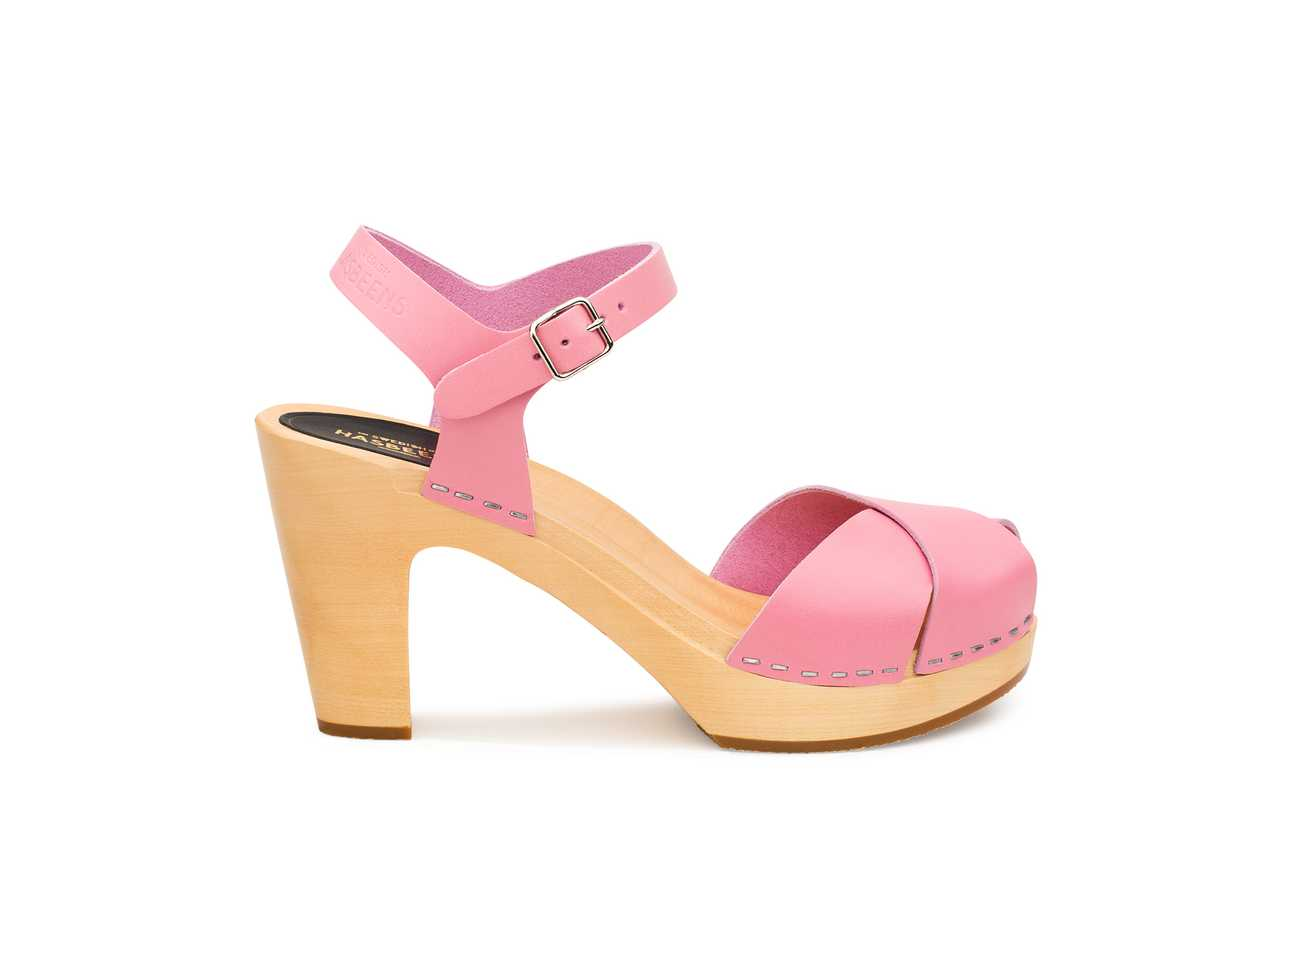 Merci Sandal Bubble Gum Pink